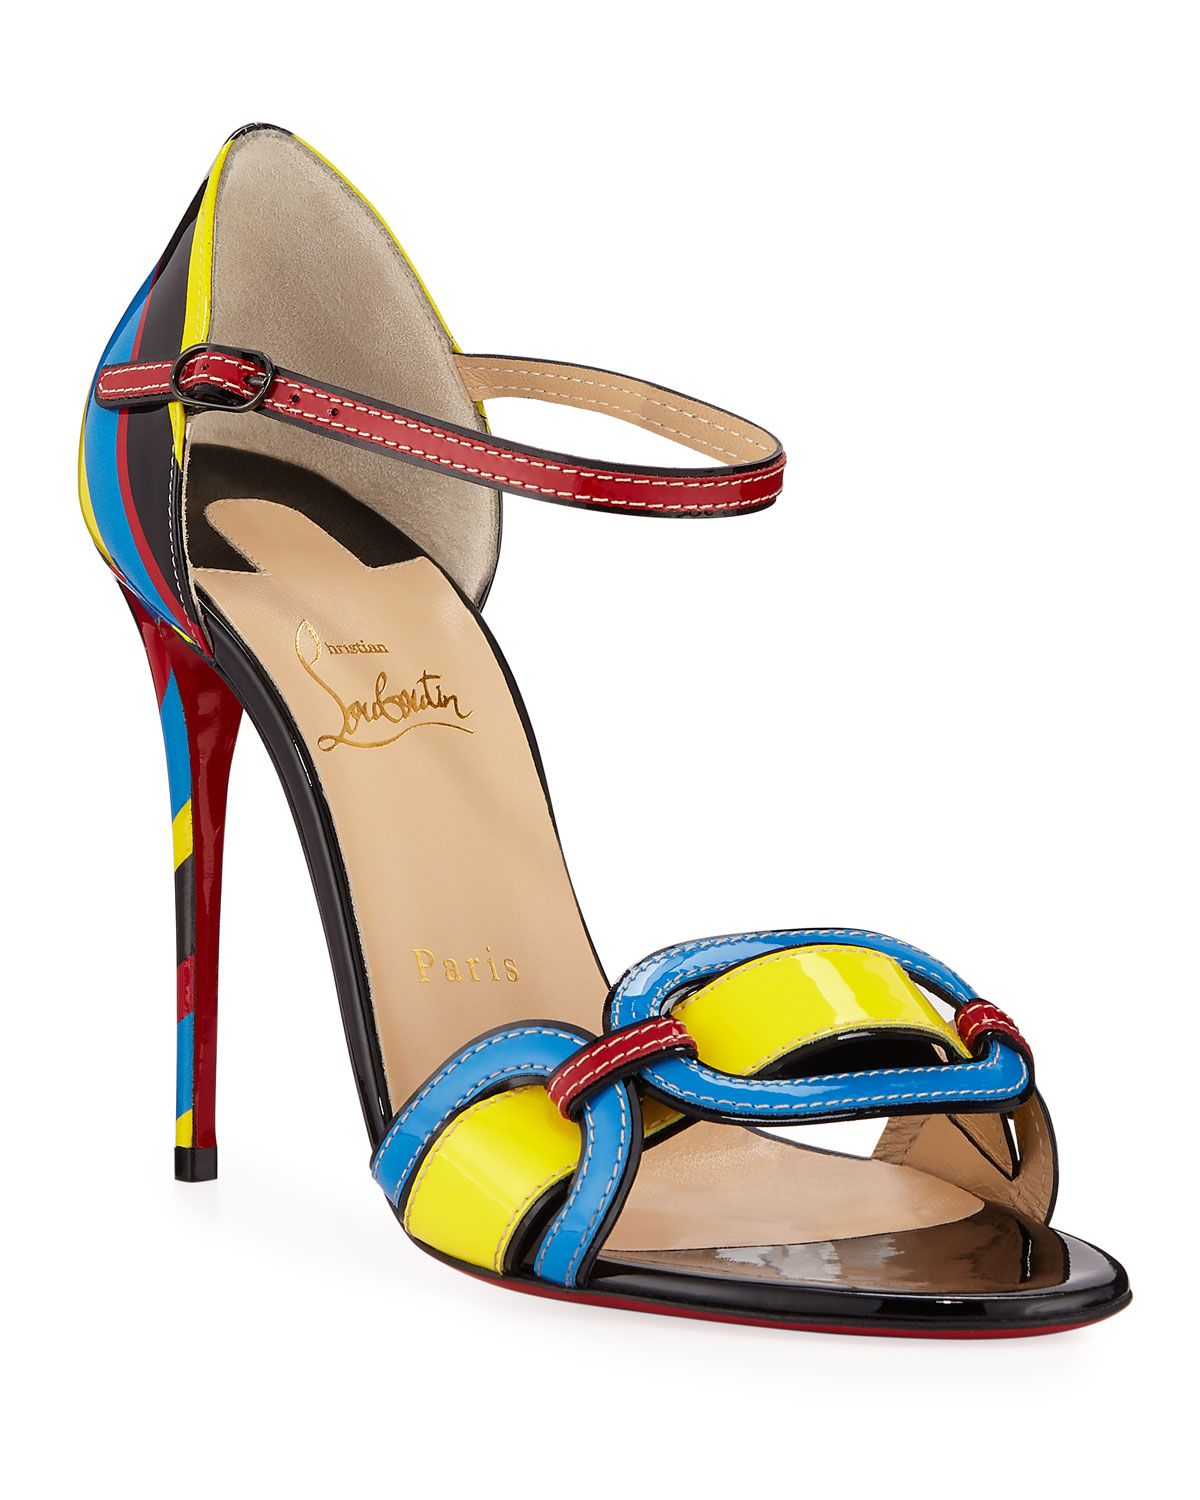 6c7299386d8 Christian Louboutin Valparaiso Colorblock Patent Red Sole Sandals in ...